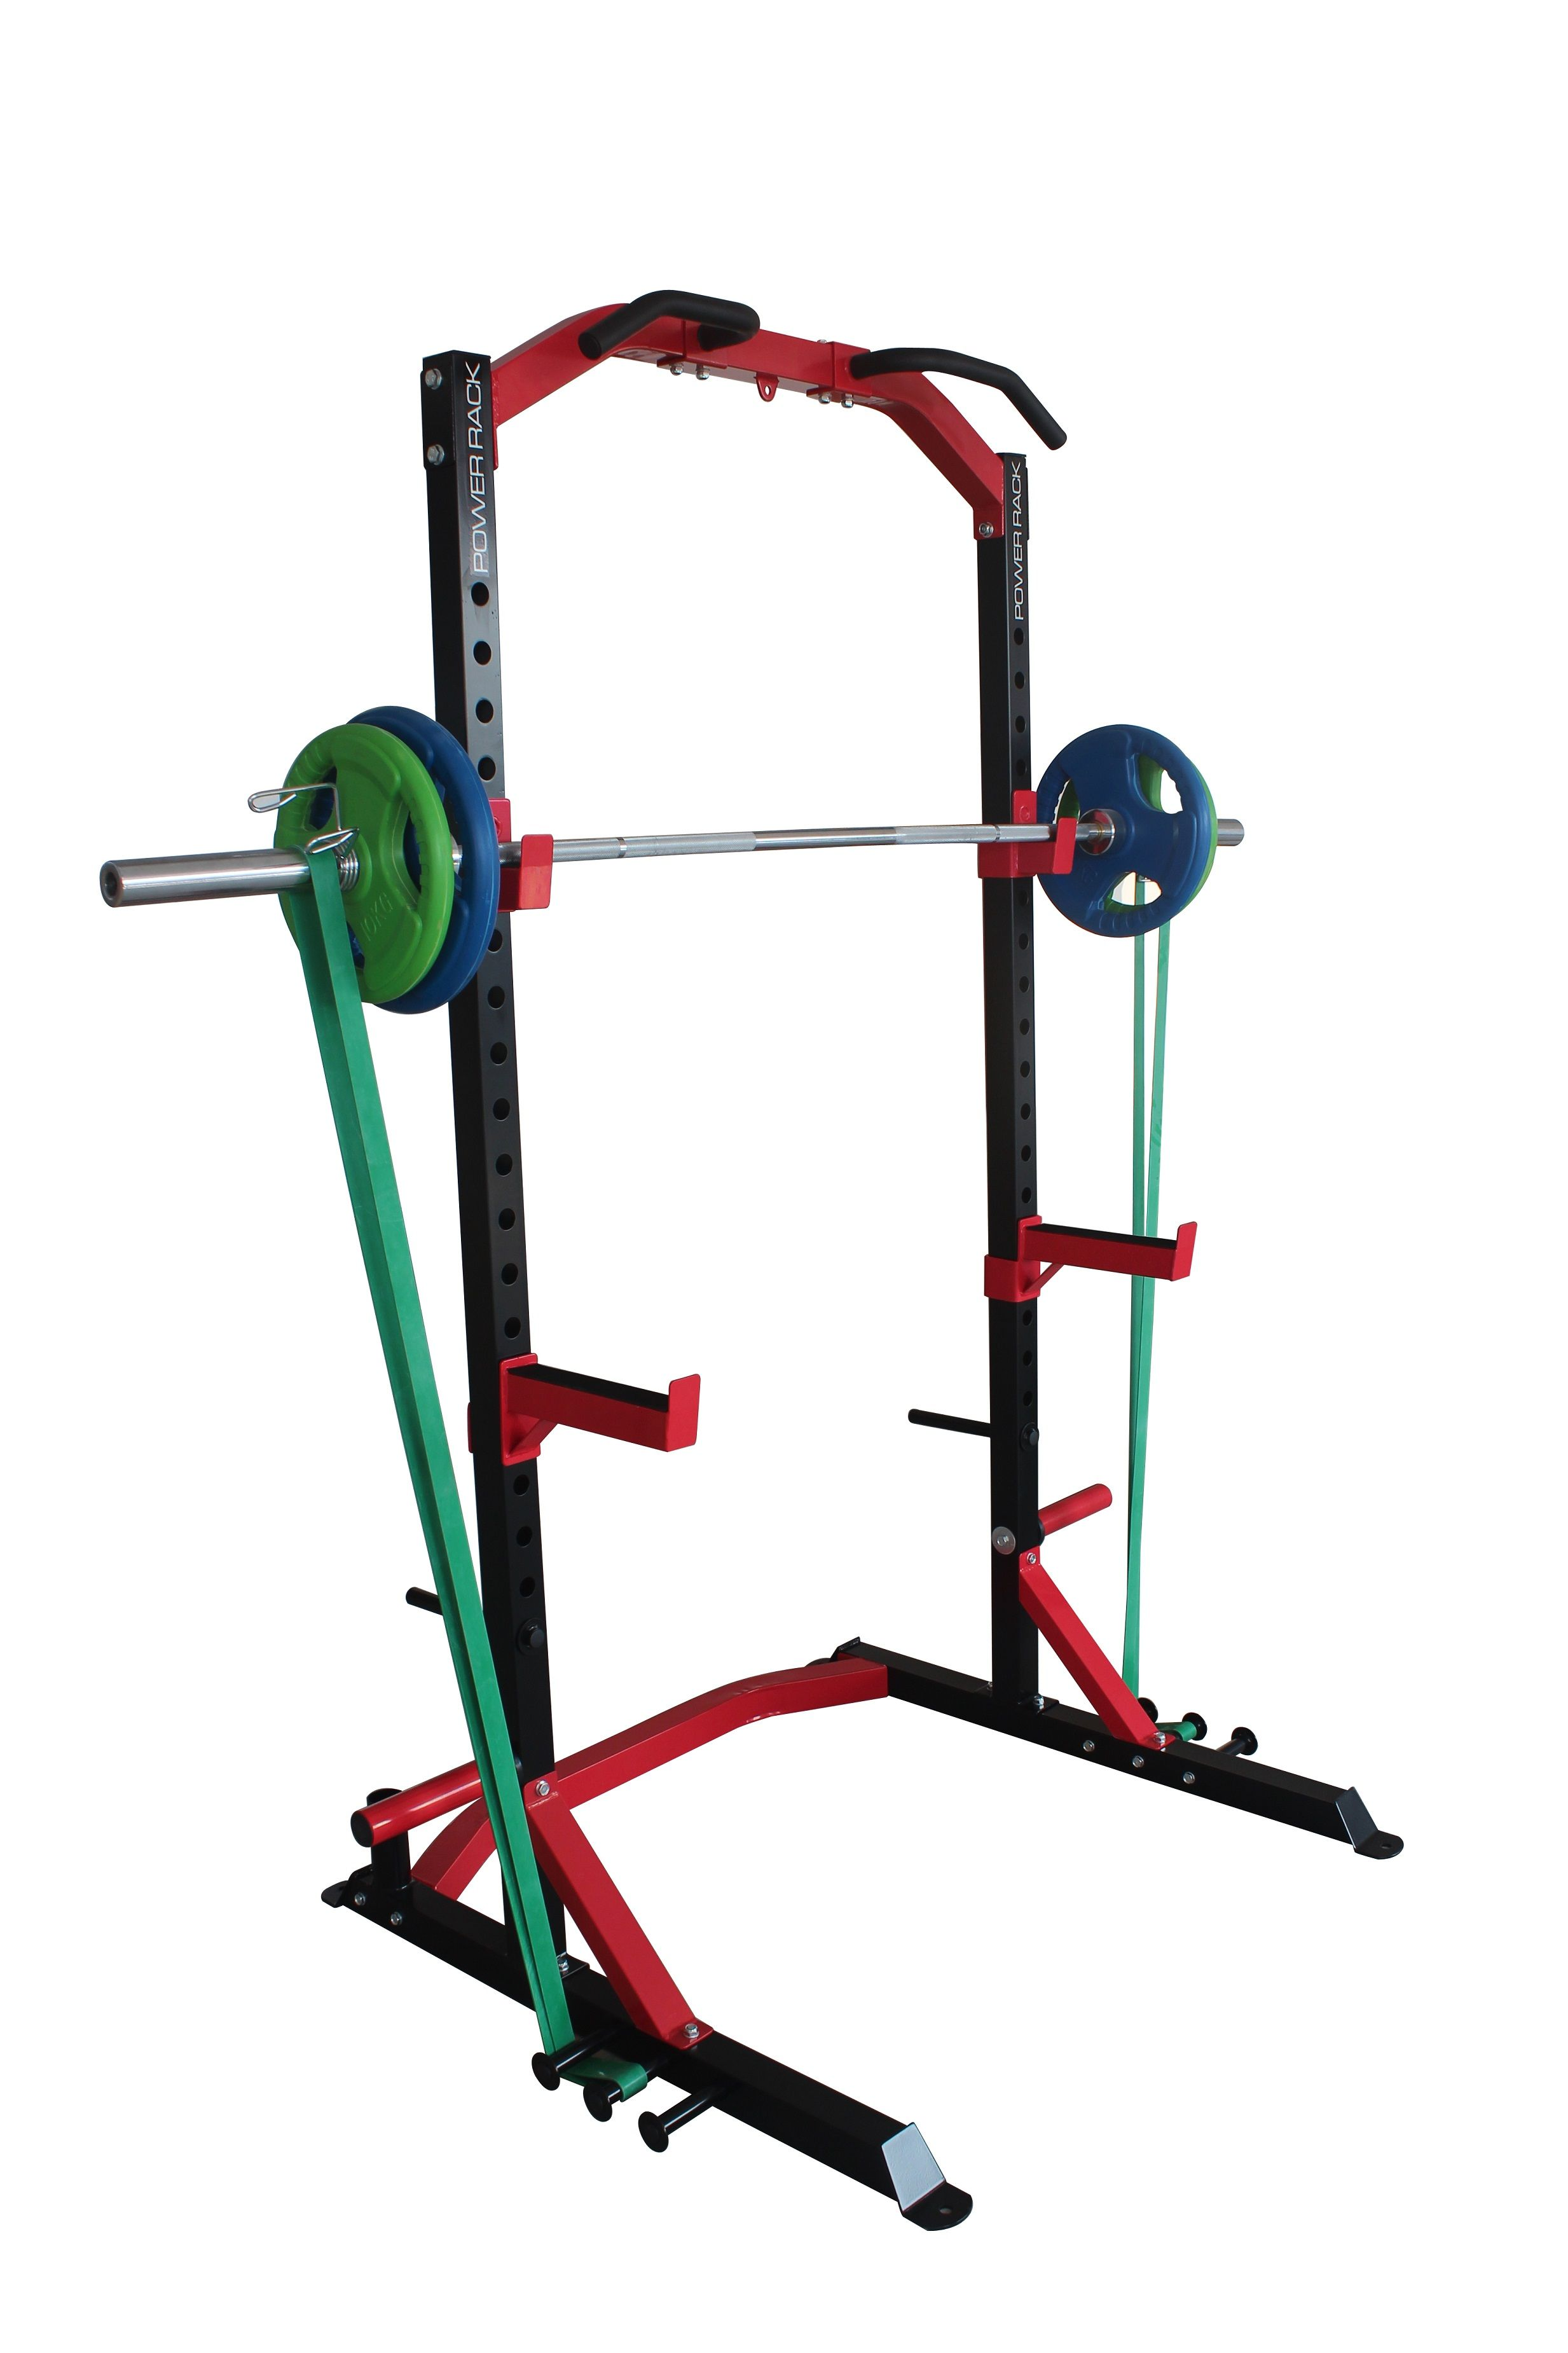 storage bar chalk rack pin training weight cross and bumper cff dumbbell bowl w barbell